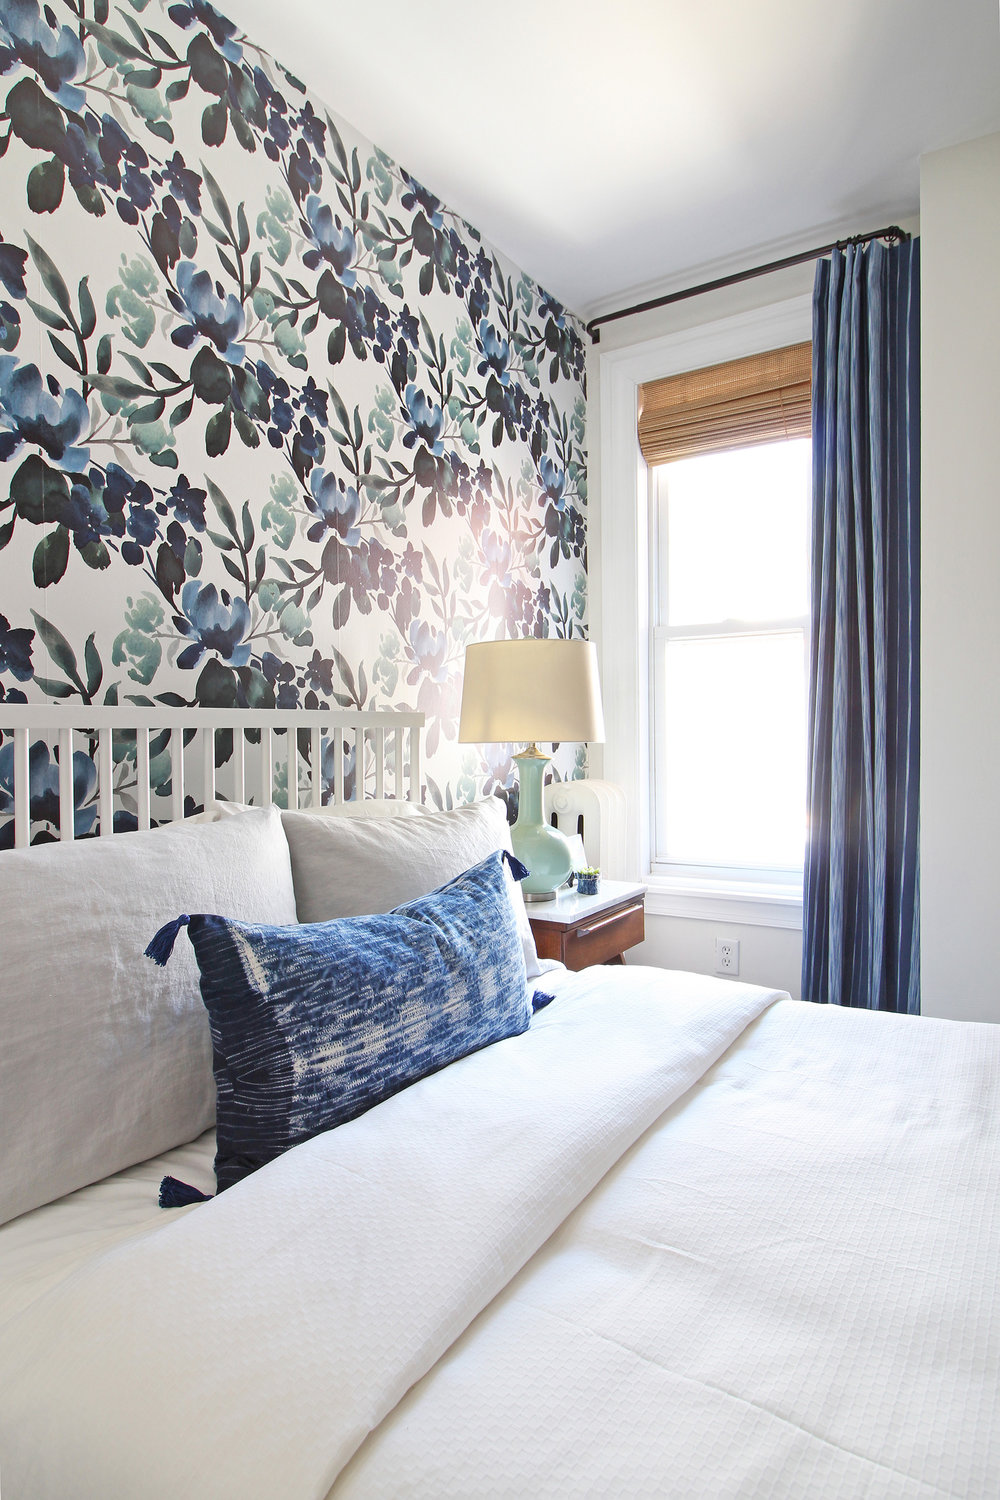 The big One Room Challenge reveal for my eclectic modern farmhouse guest bedroom is up on the blog! Come on over and see the blue-green floral wallpaper, my marble topped vintage nightstands, and my take on modernizing an antique dresser! An indigo lumbar pillow tops off the white bedding. || Design: Mix & Match Design Company